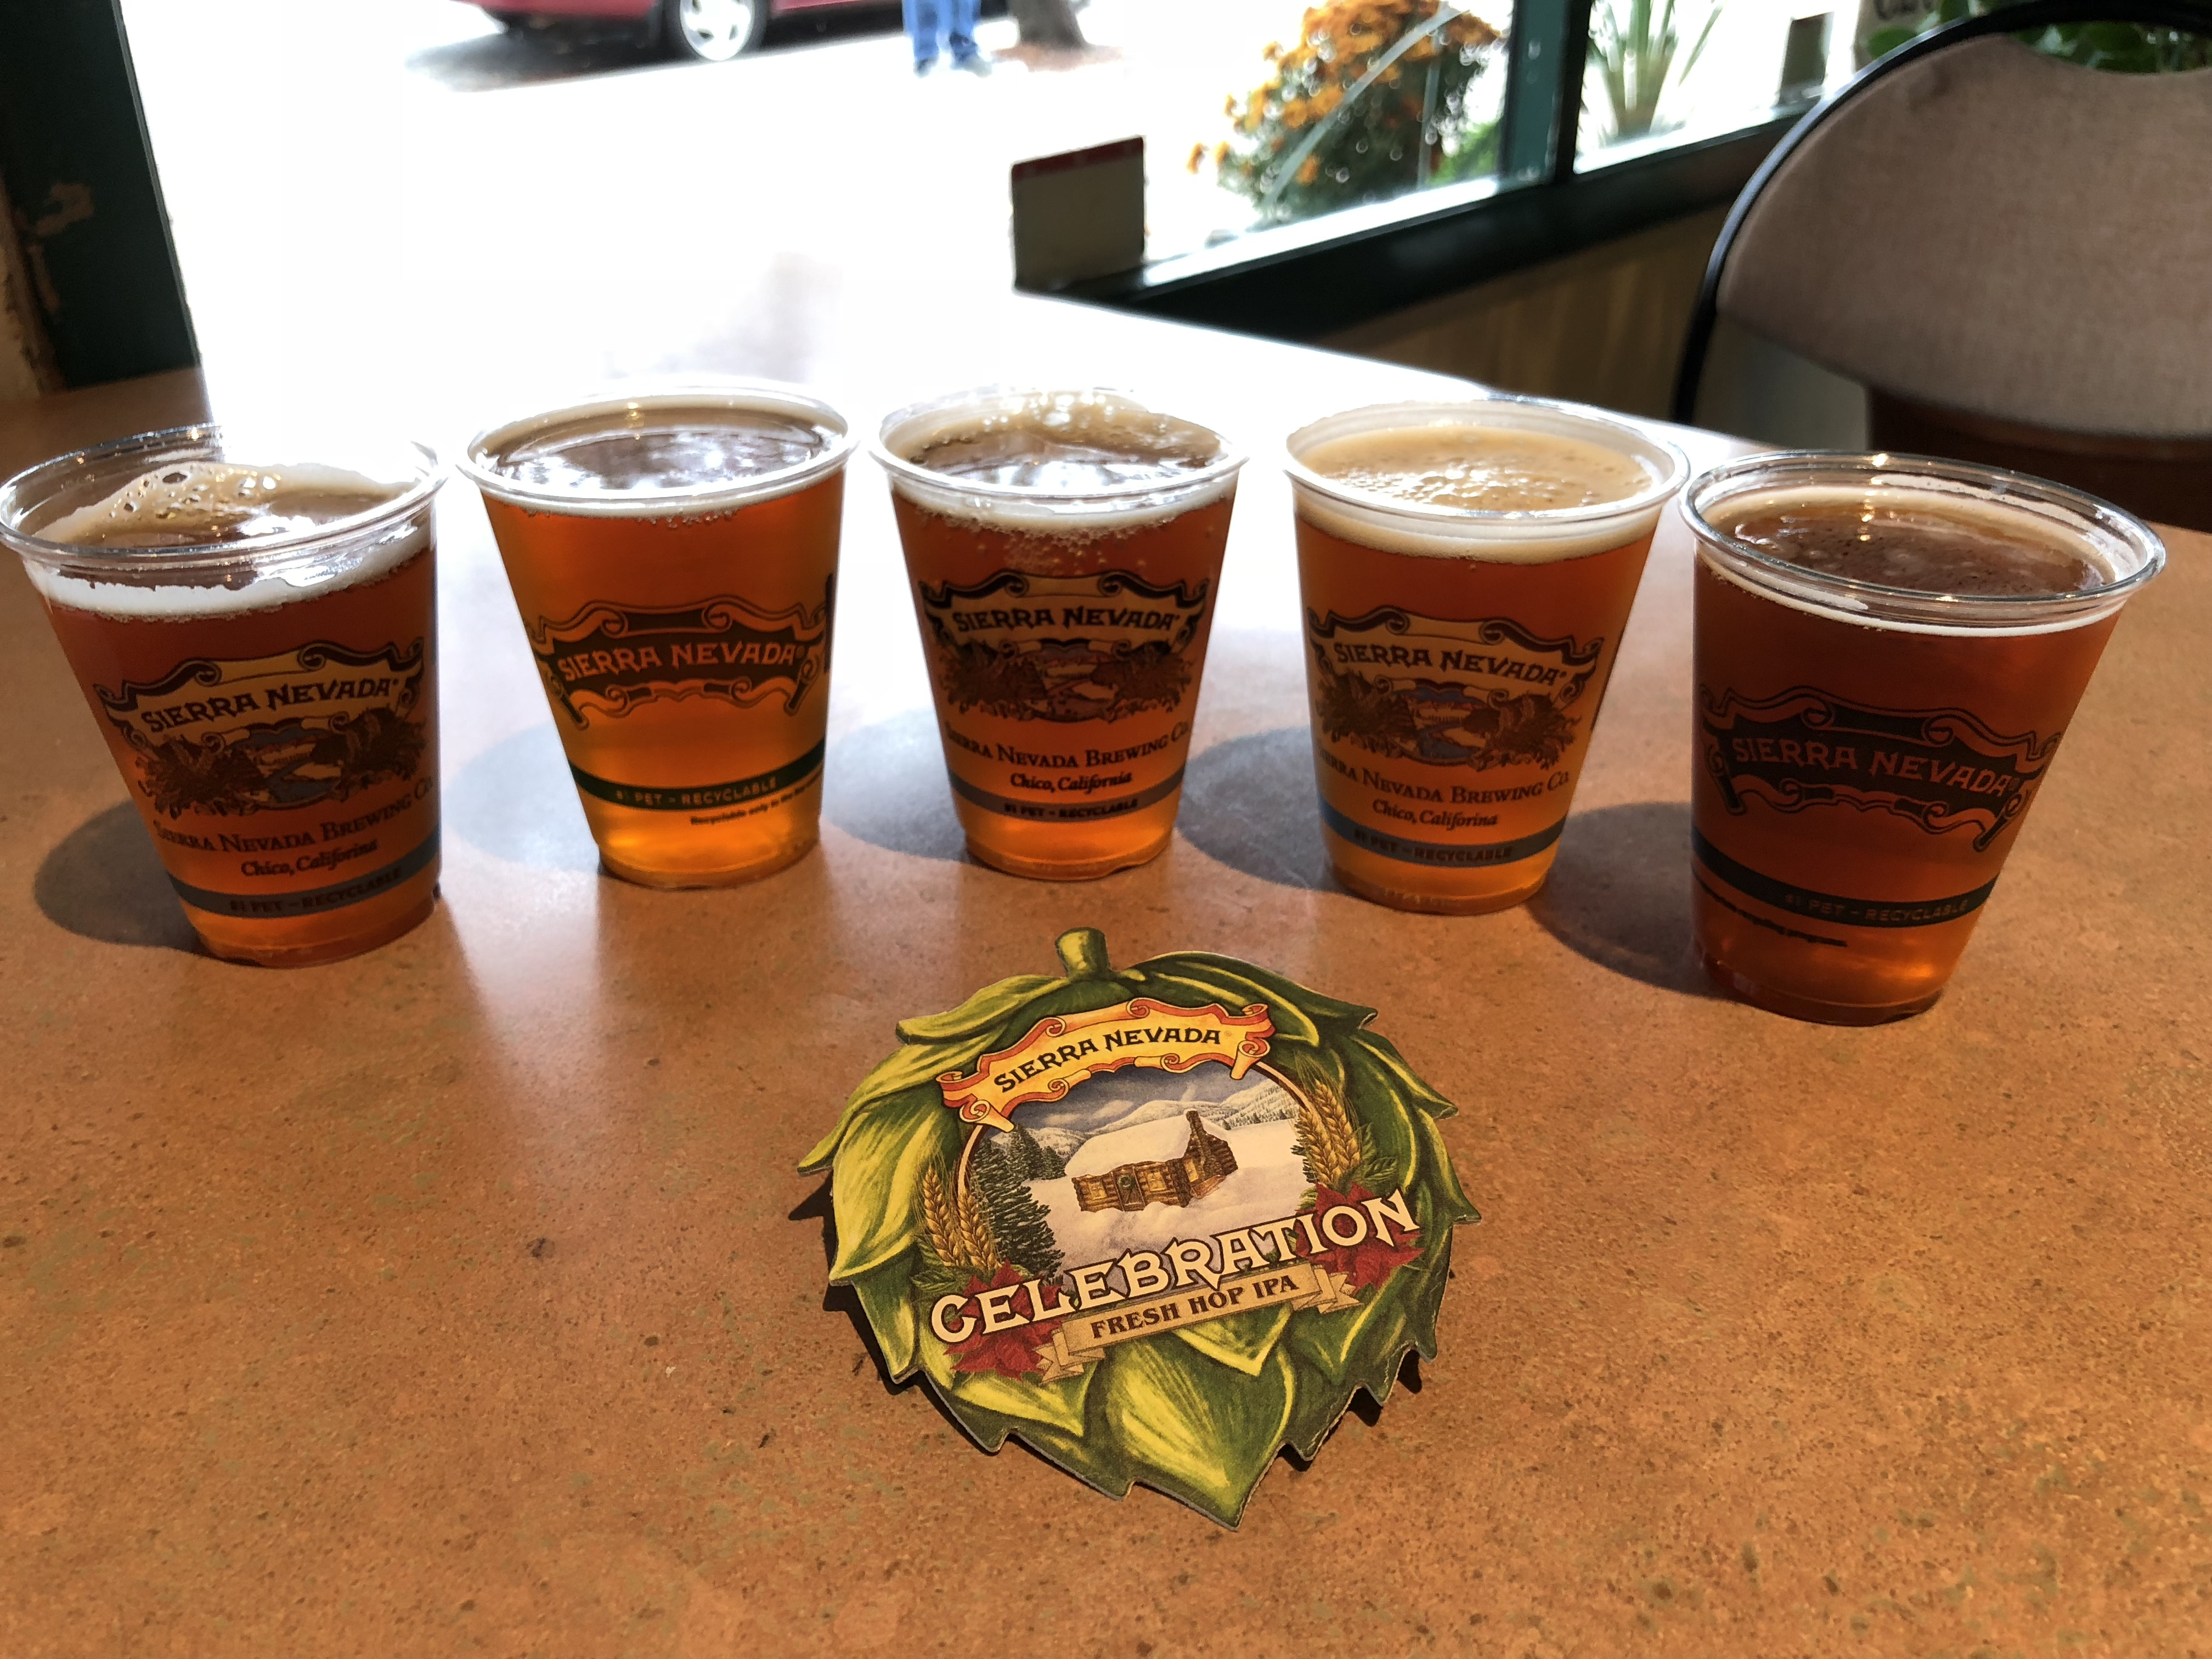 A 2013-2017 vertical of Sierra Nevada Celebration